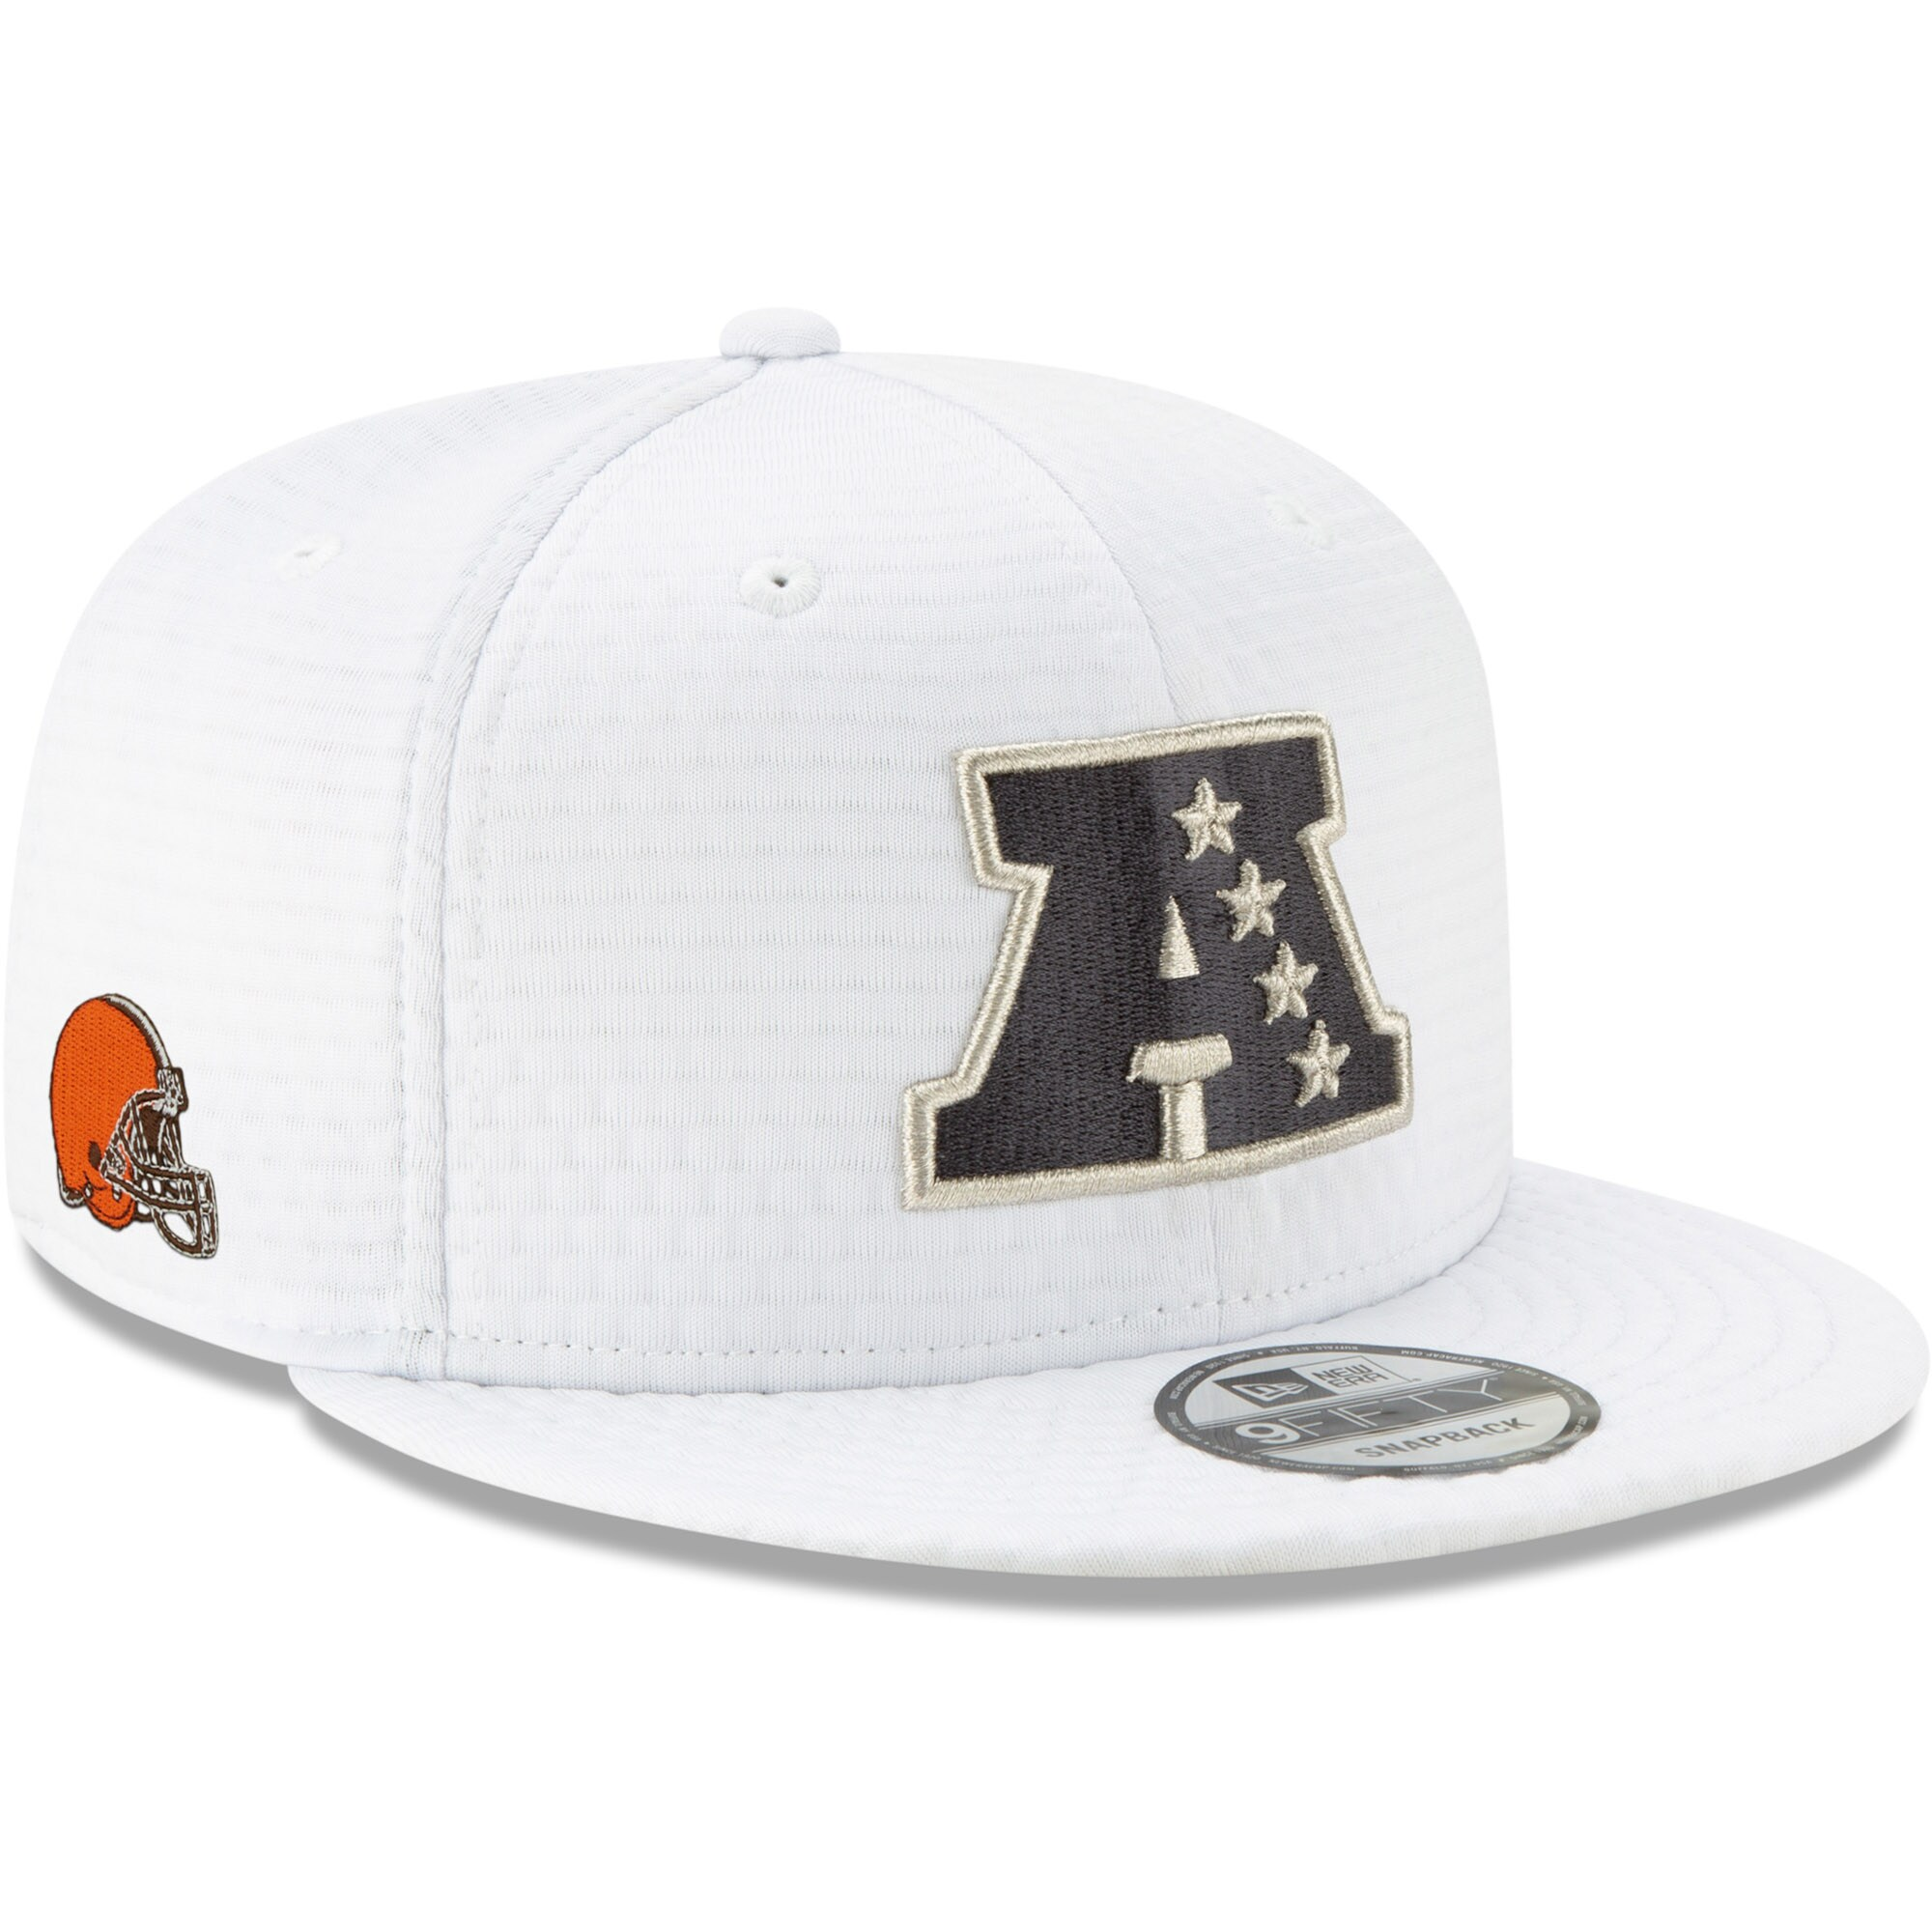 Cleveland Browns New Era AFC Pro Bowl 9FIFTY Adjustable Snapback Hat - White